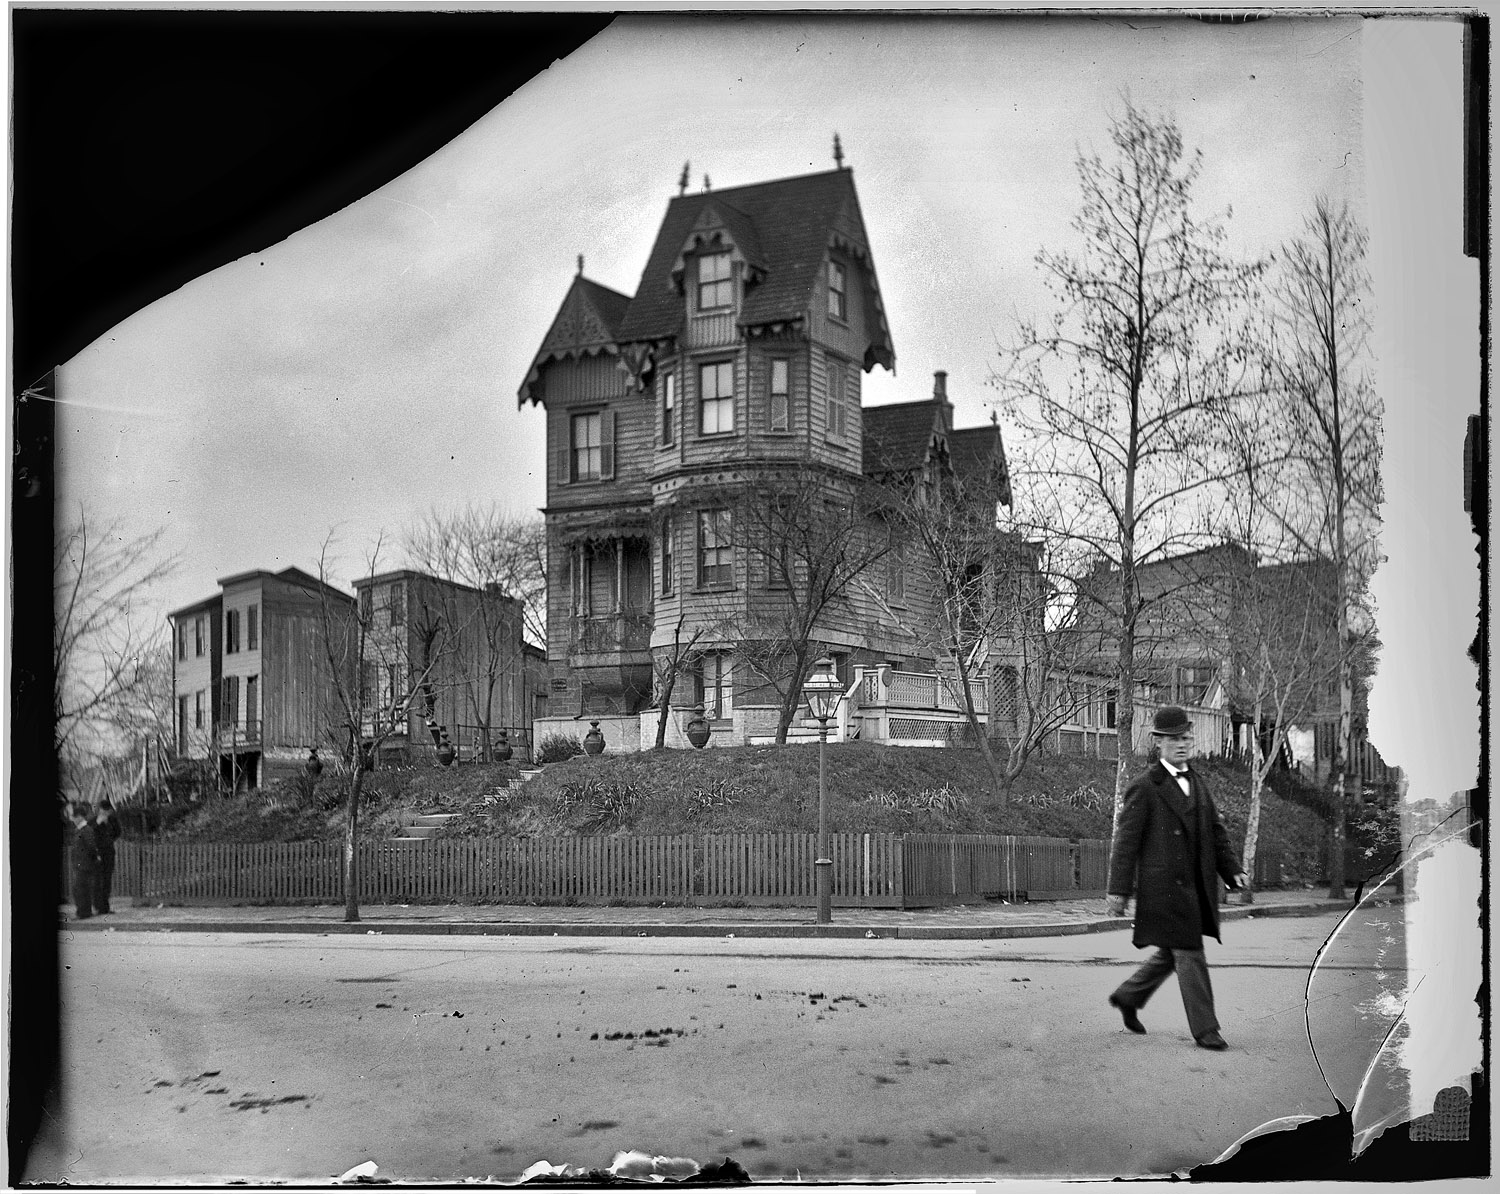 Shorpy historic picture archive this old house 1918 for This old housse